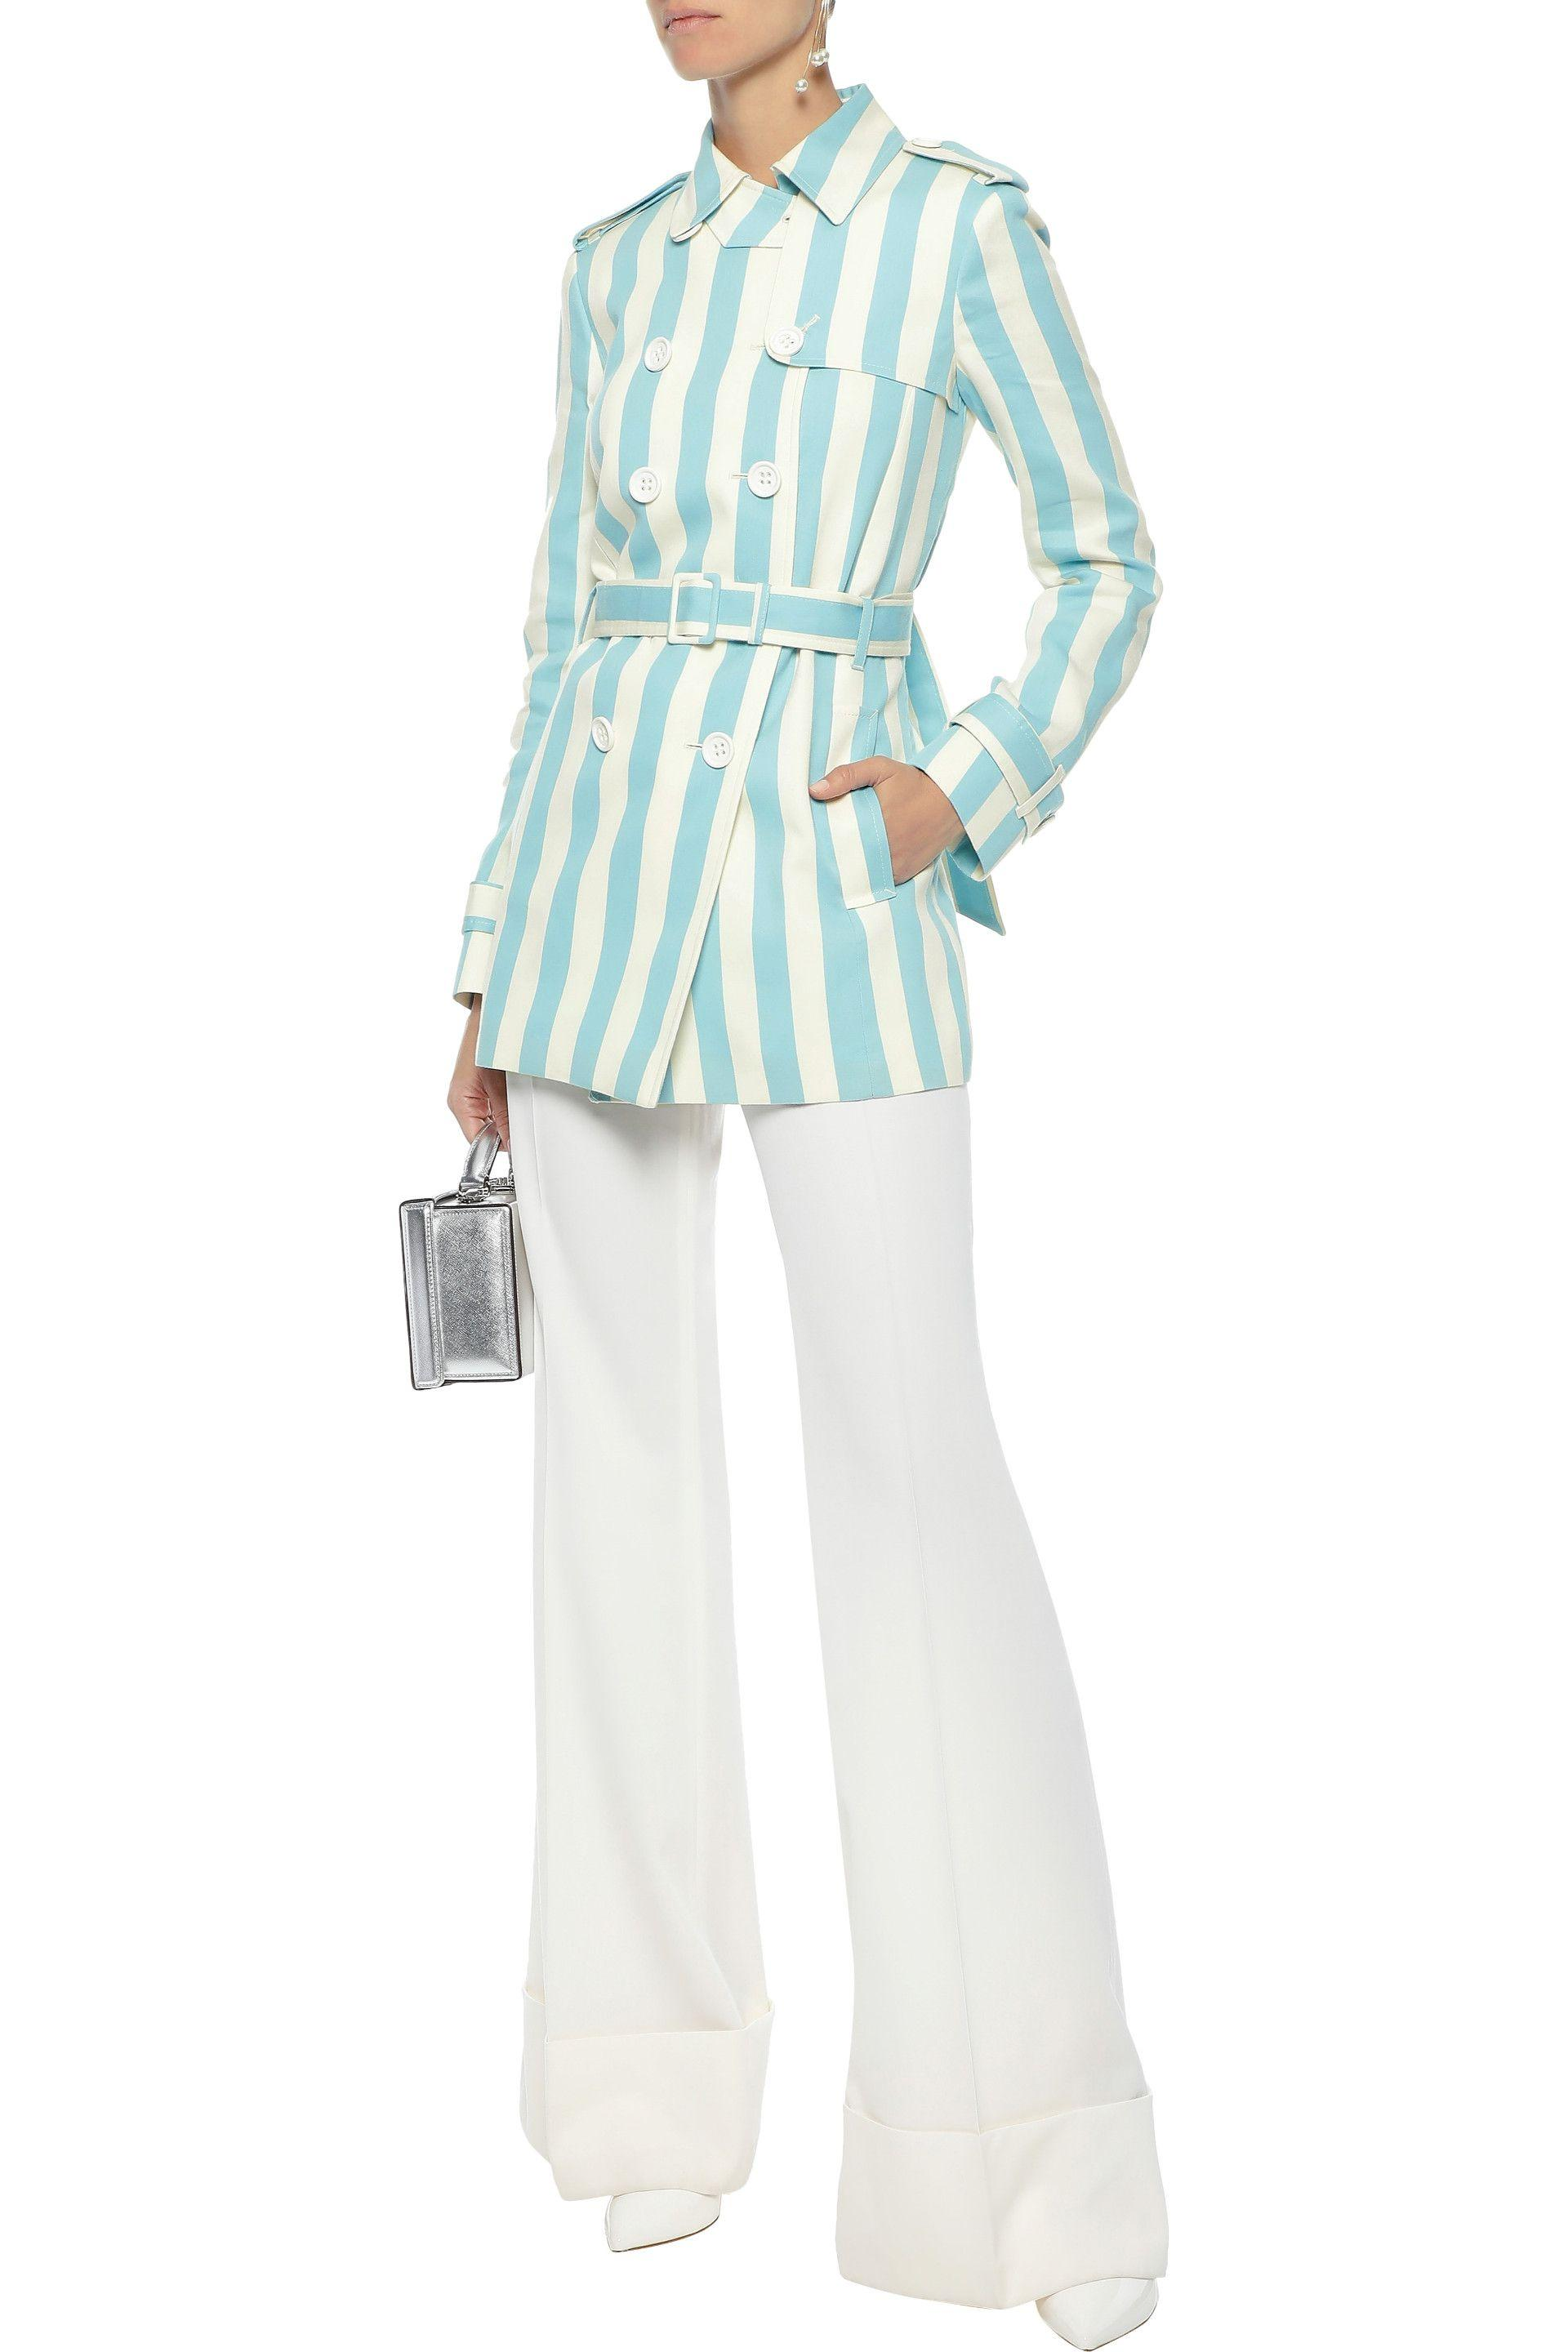 d4be1f4eef9 RED Valentino - Woman Striped Cotton And Silk-blend Gabardine Trench Coat  Sky Blue -. View fullscreen